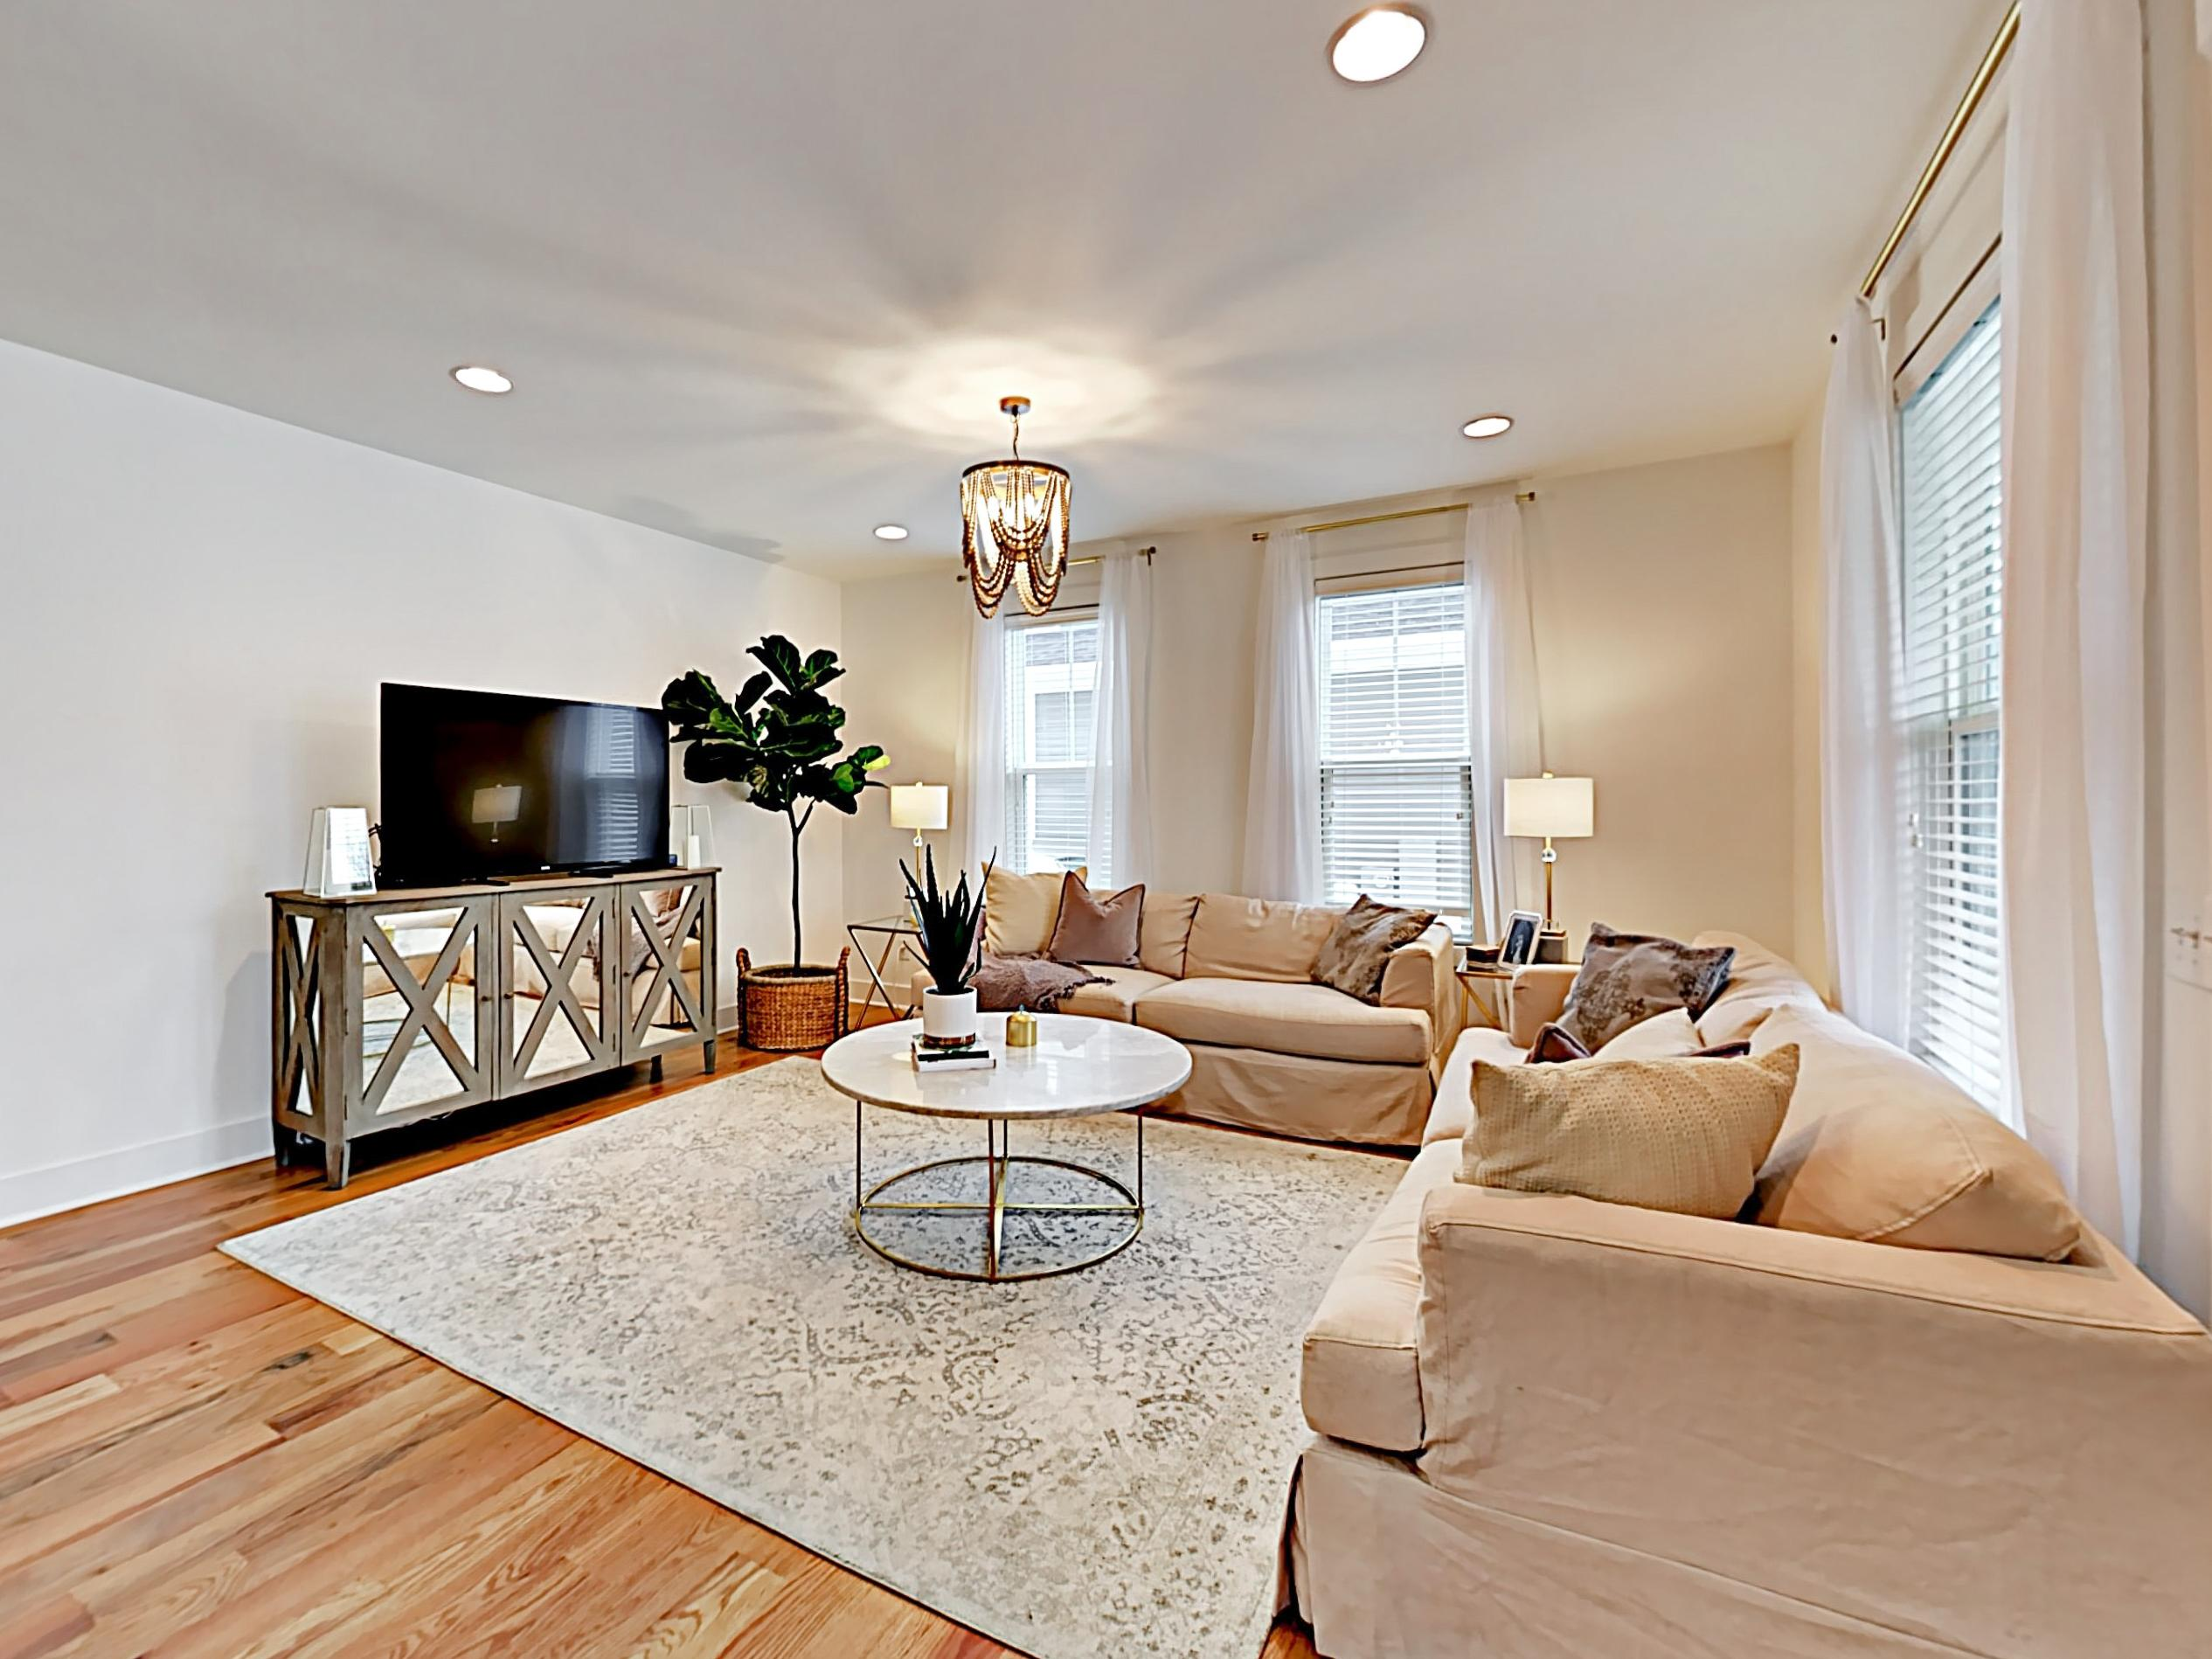 The elegant living room has seating for 6.